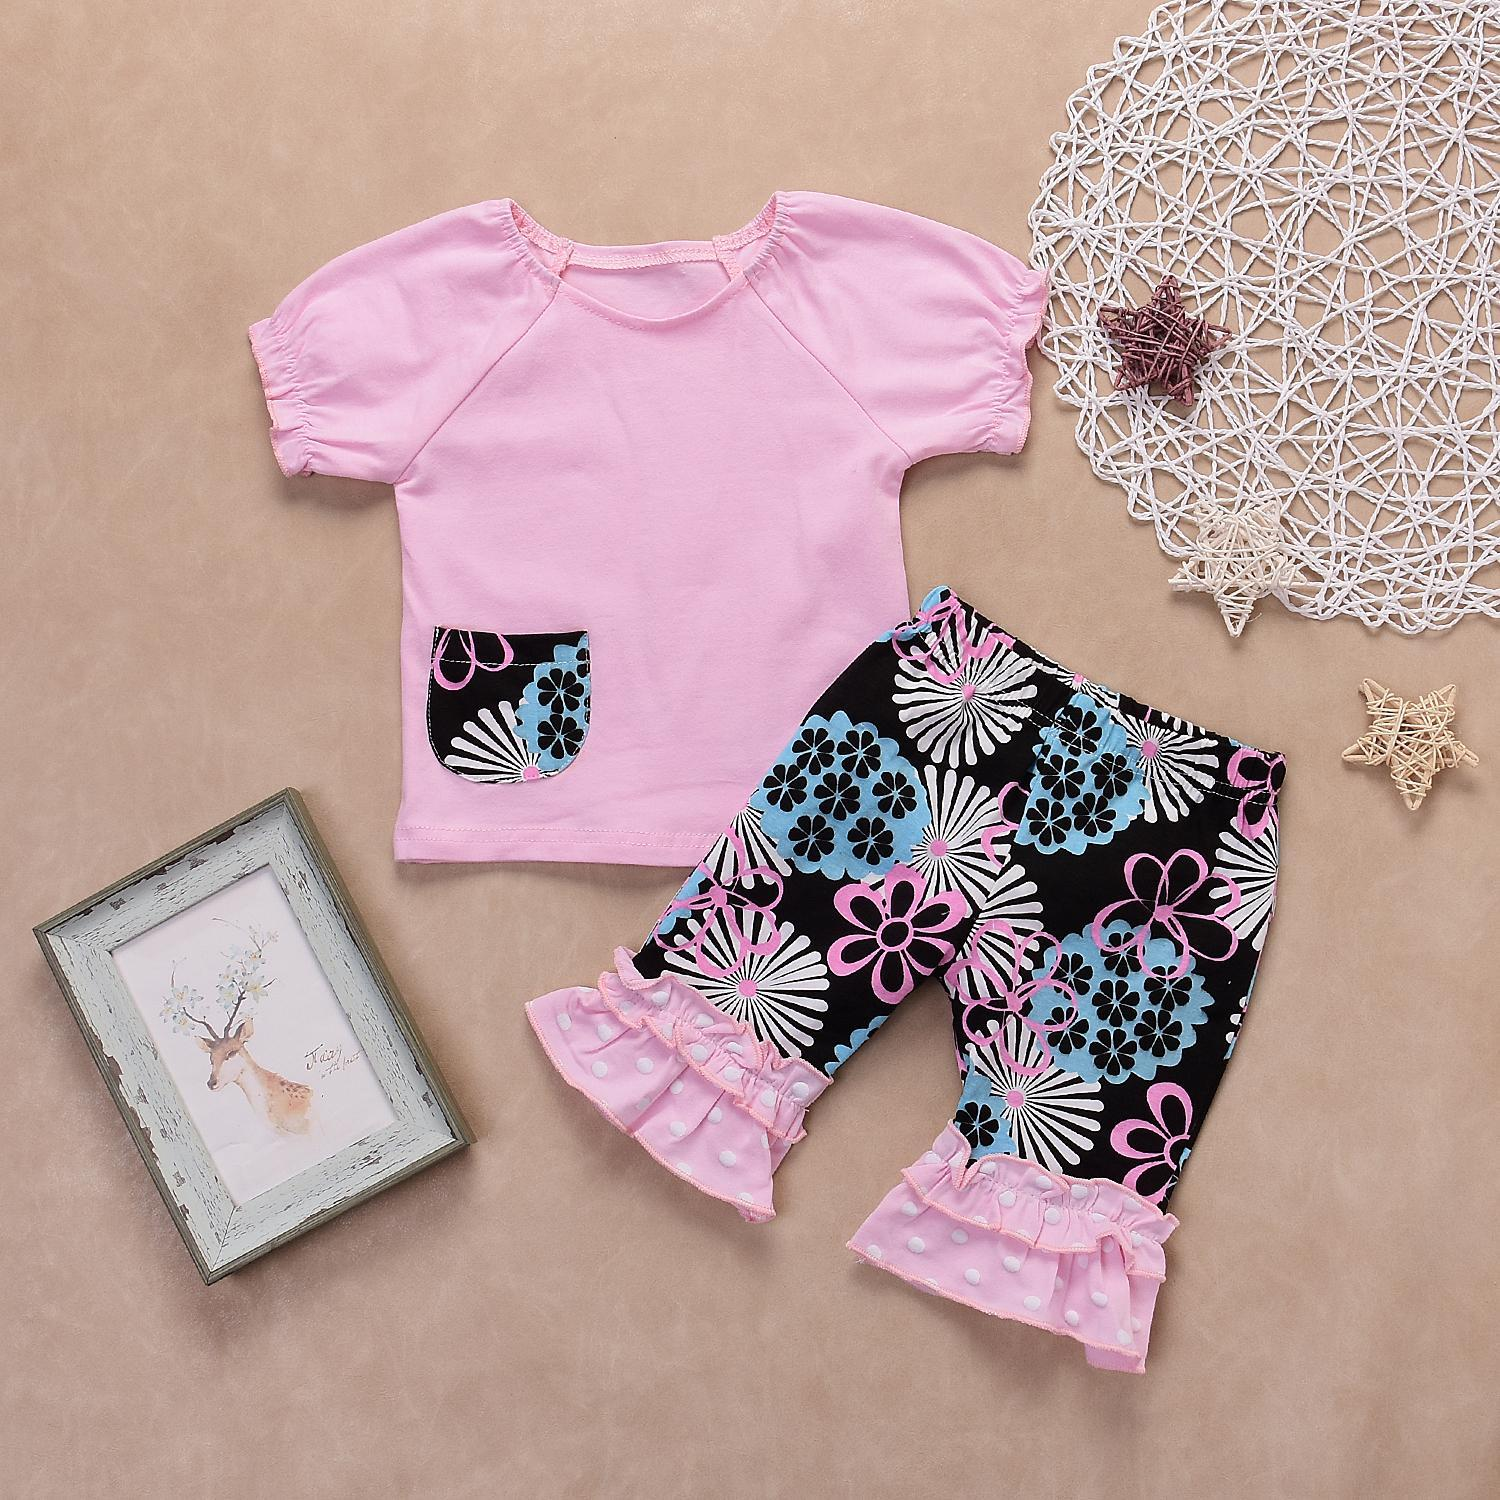 OpenBeauty 1 Set Girl Baby Summer Pink Ruffle Top Cropped Pants Floral Elastic Shorts Set Comfortable for 3-24 Months Baby